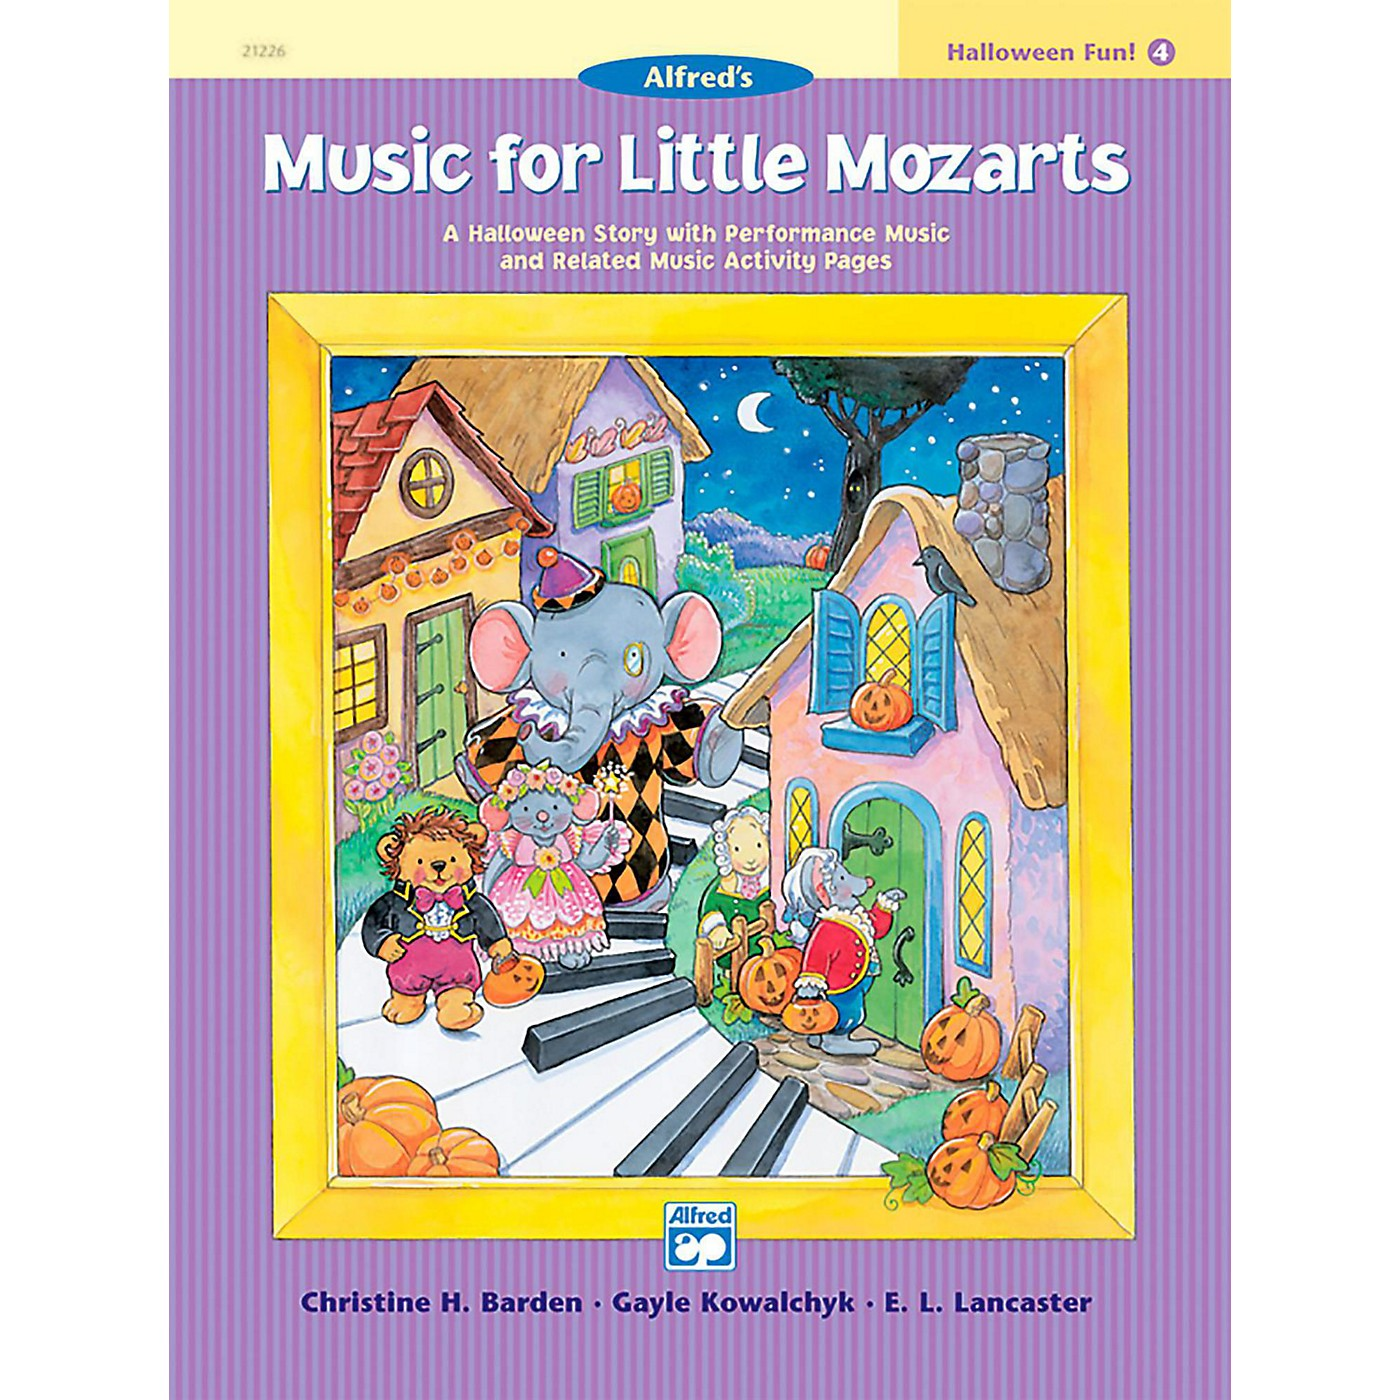 Alfred Music for Little Mozarts: Halloween Fun Book 4 thumbnail